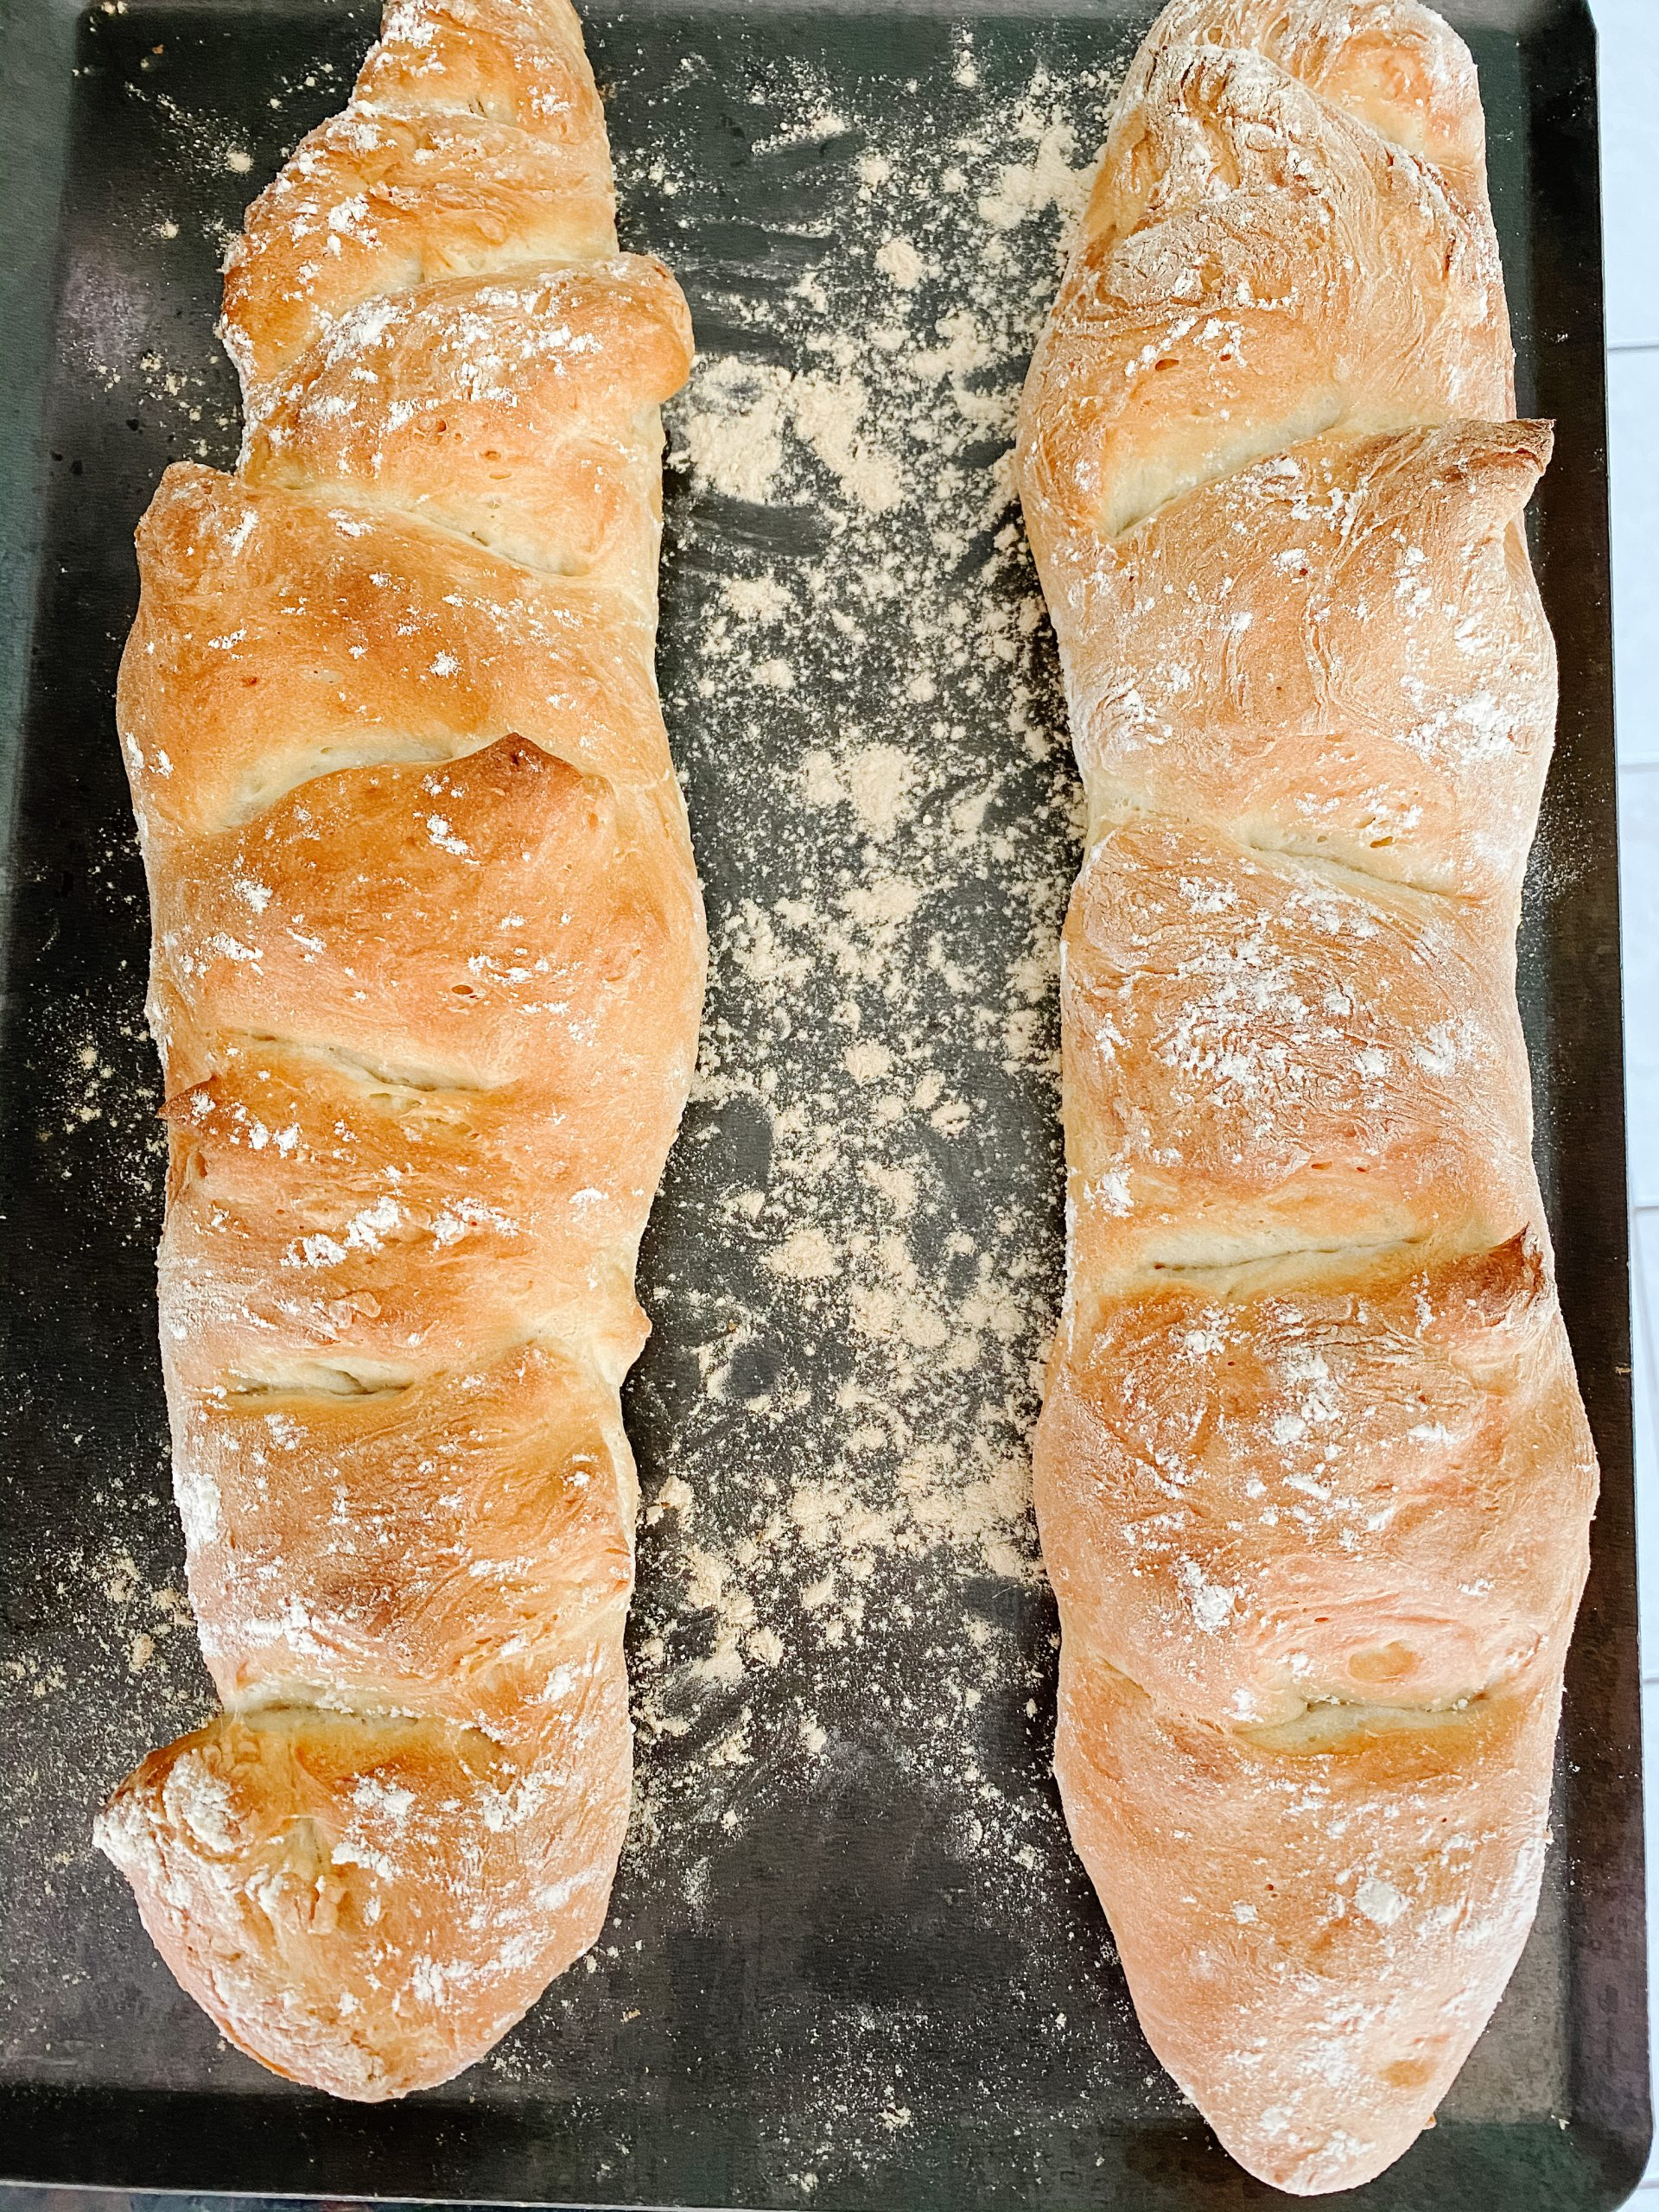 fresh baked baguettes on a cooking tray